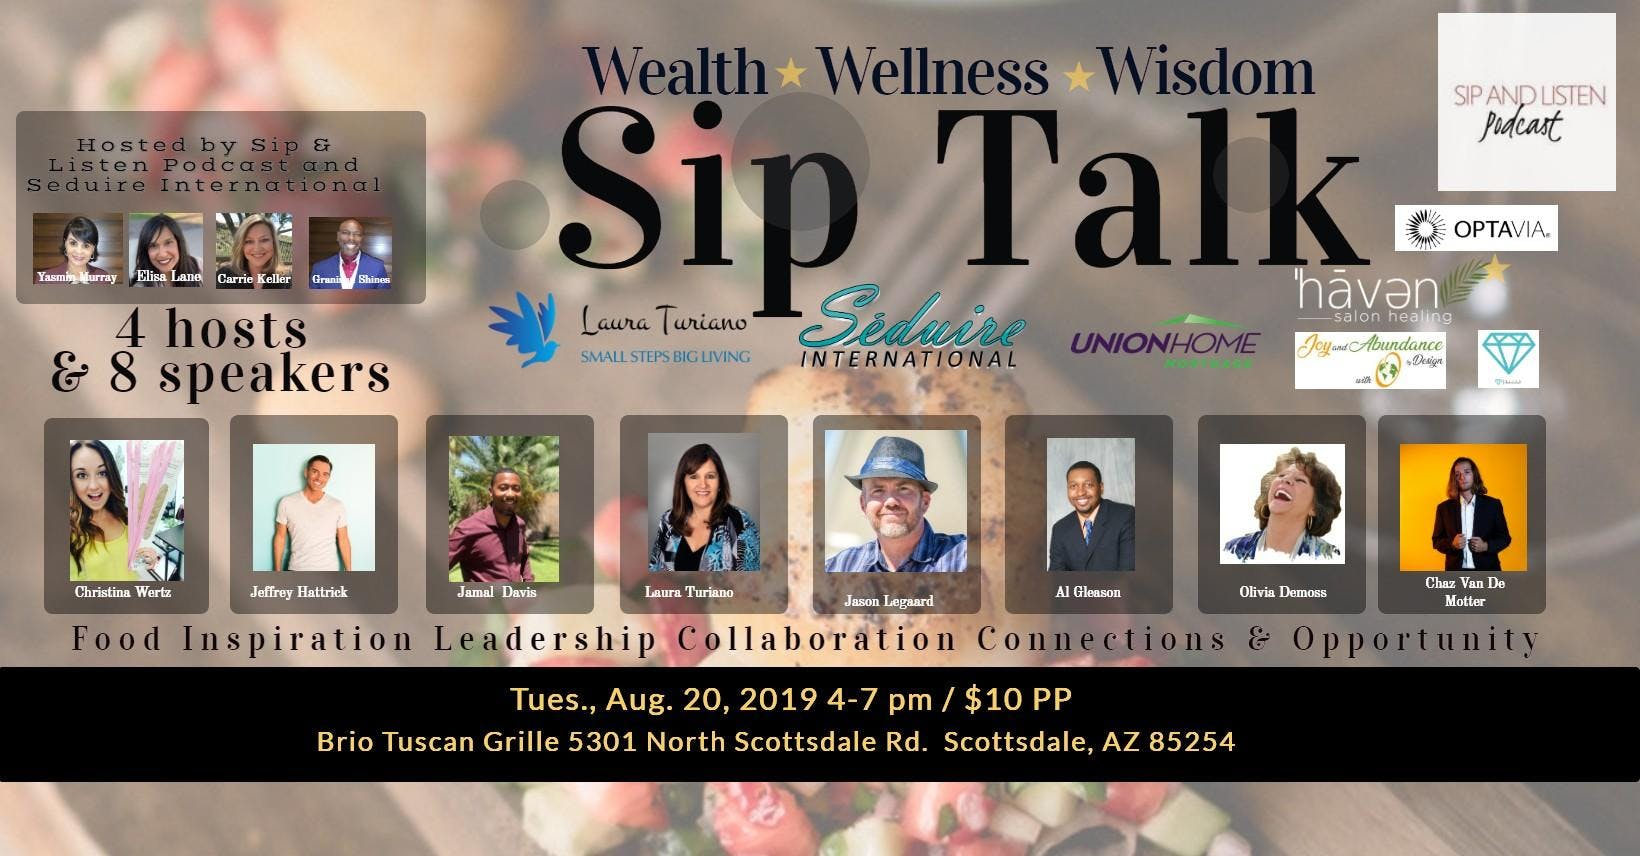 Sip Talk - Inspiration, Education, Ideas, Networking, New Connections and Lots of Fun!